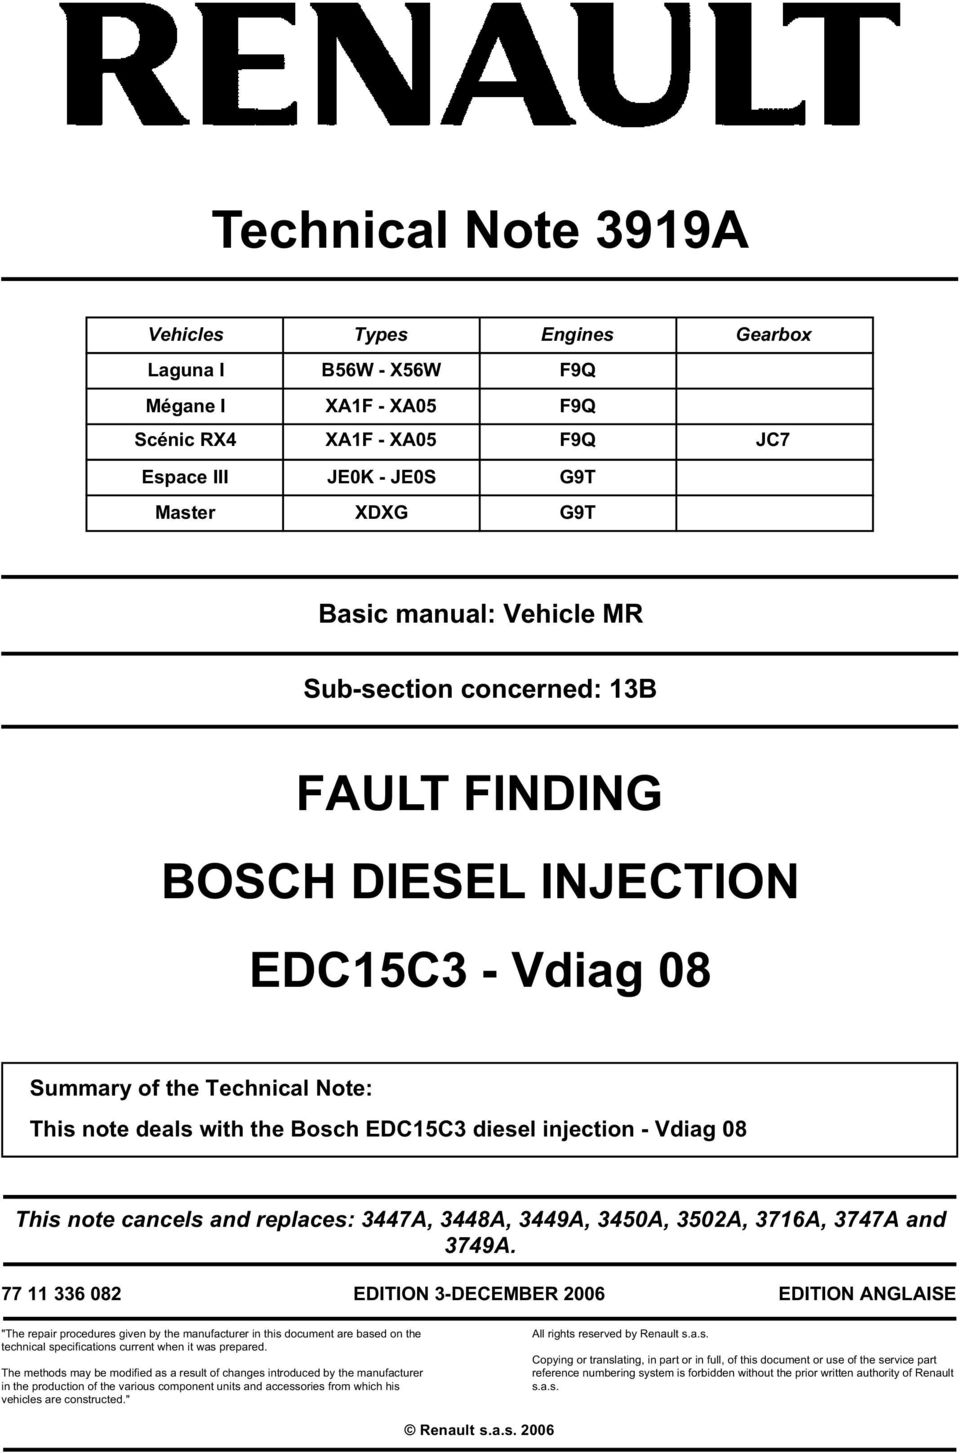 Technical Note 3919A - PDF